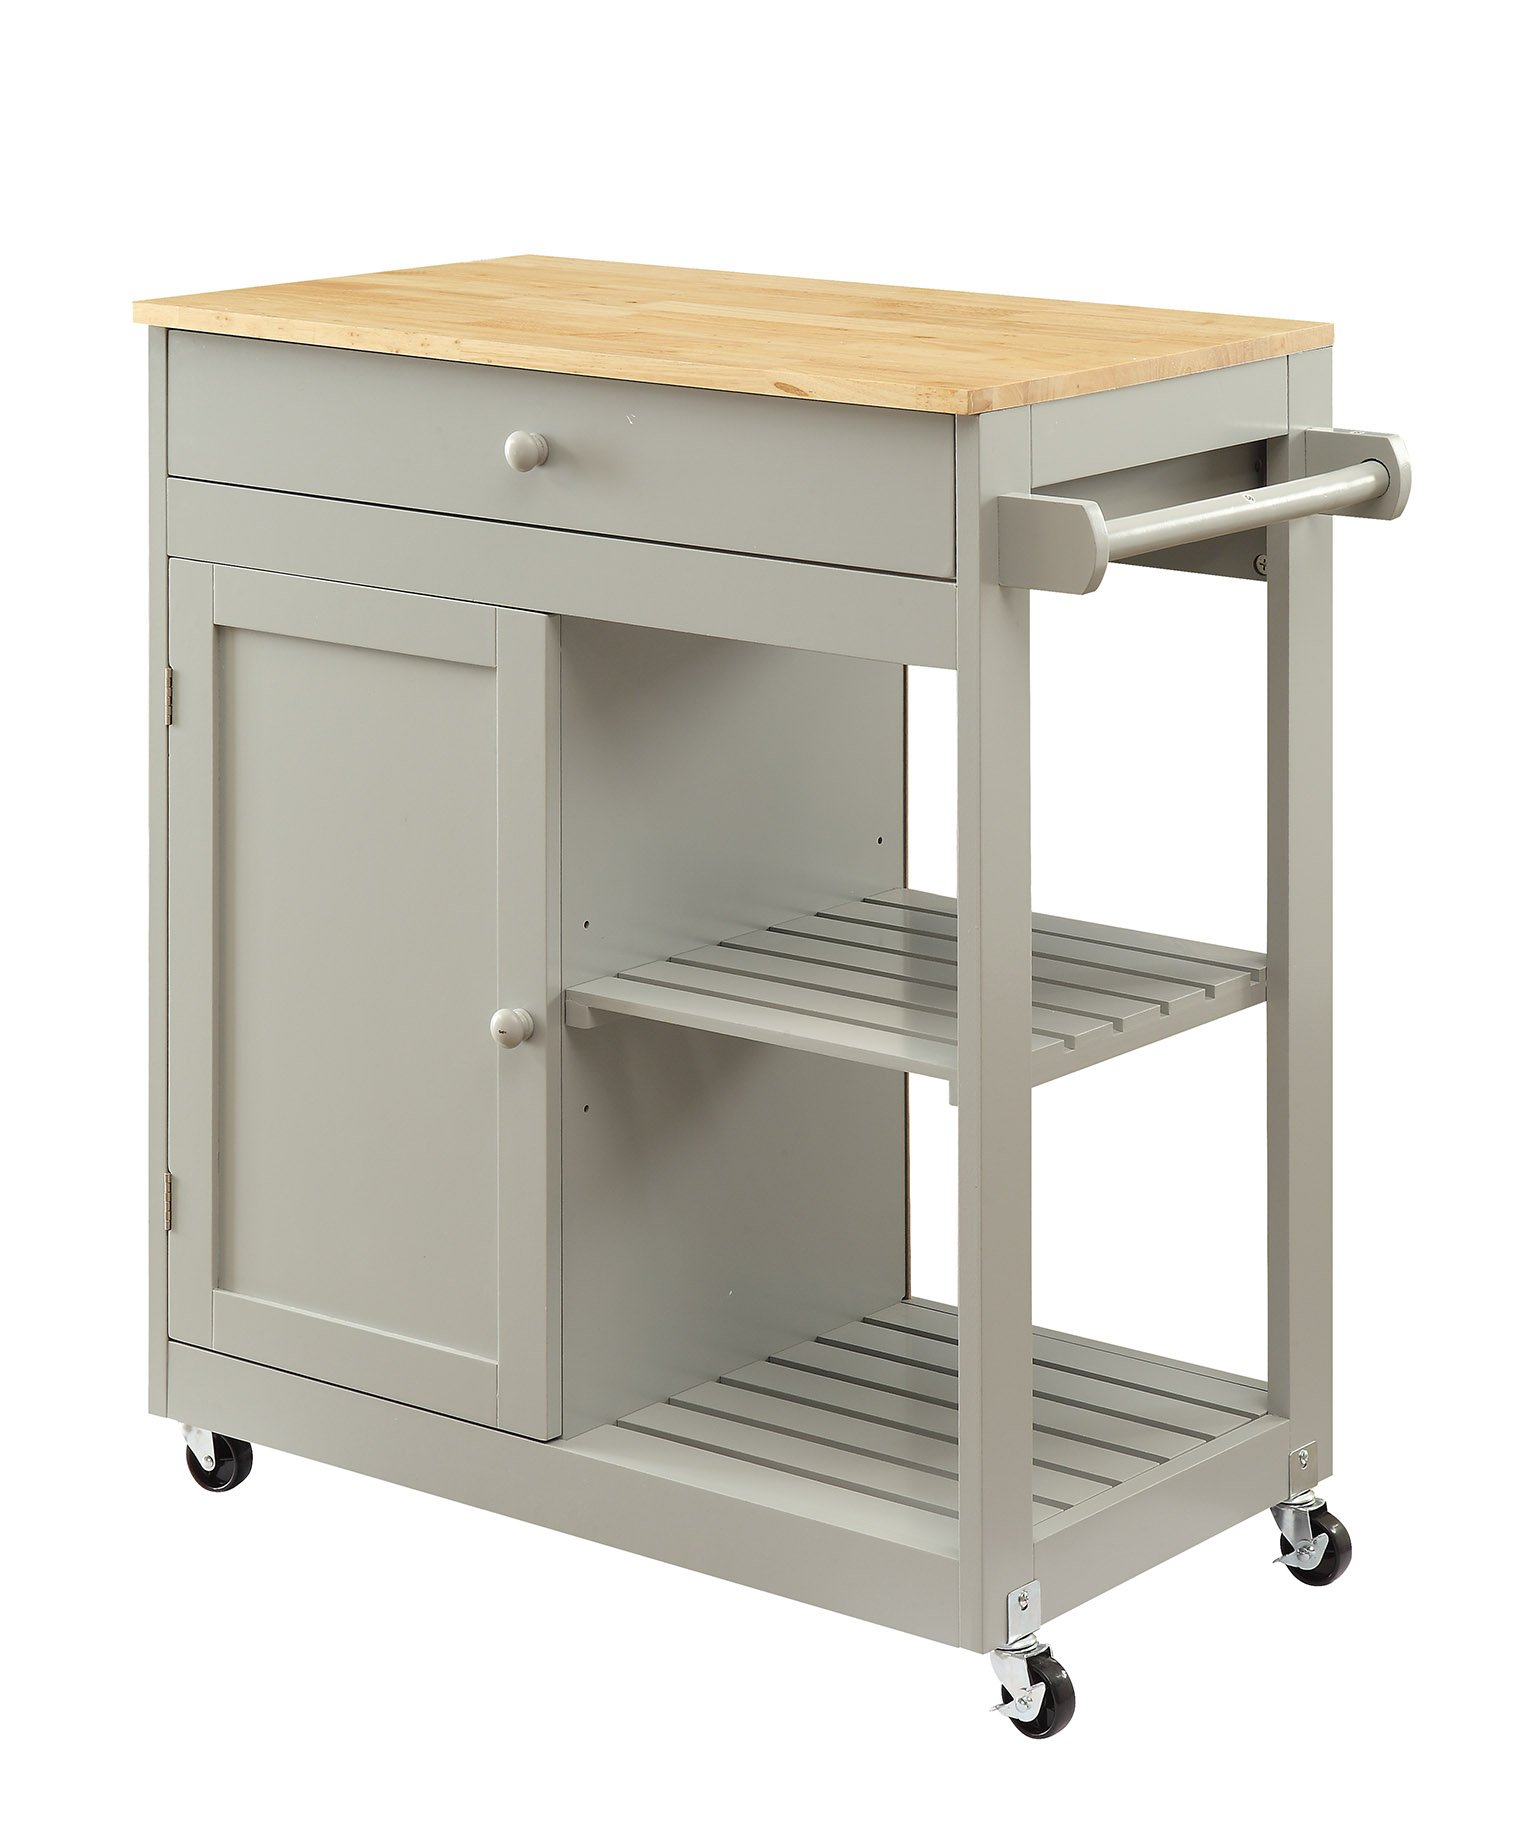 Oliver and Smith - Nashville Collection - Mobile Kitchen Island Cart on Wheels - Wooden Grey - Natural Oak Butcher Block - 30'' W x 17'' L x 36'' H